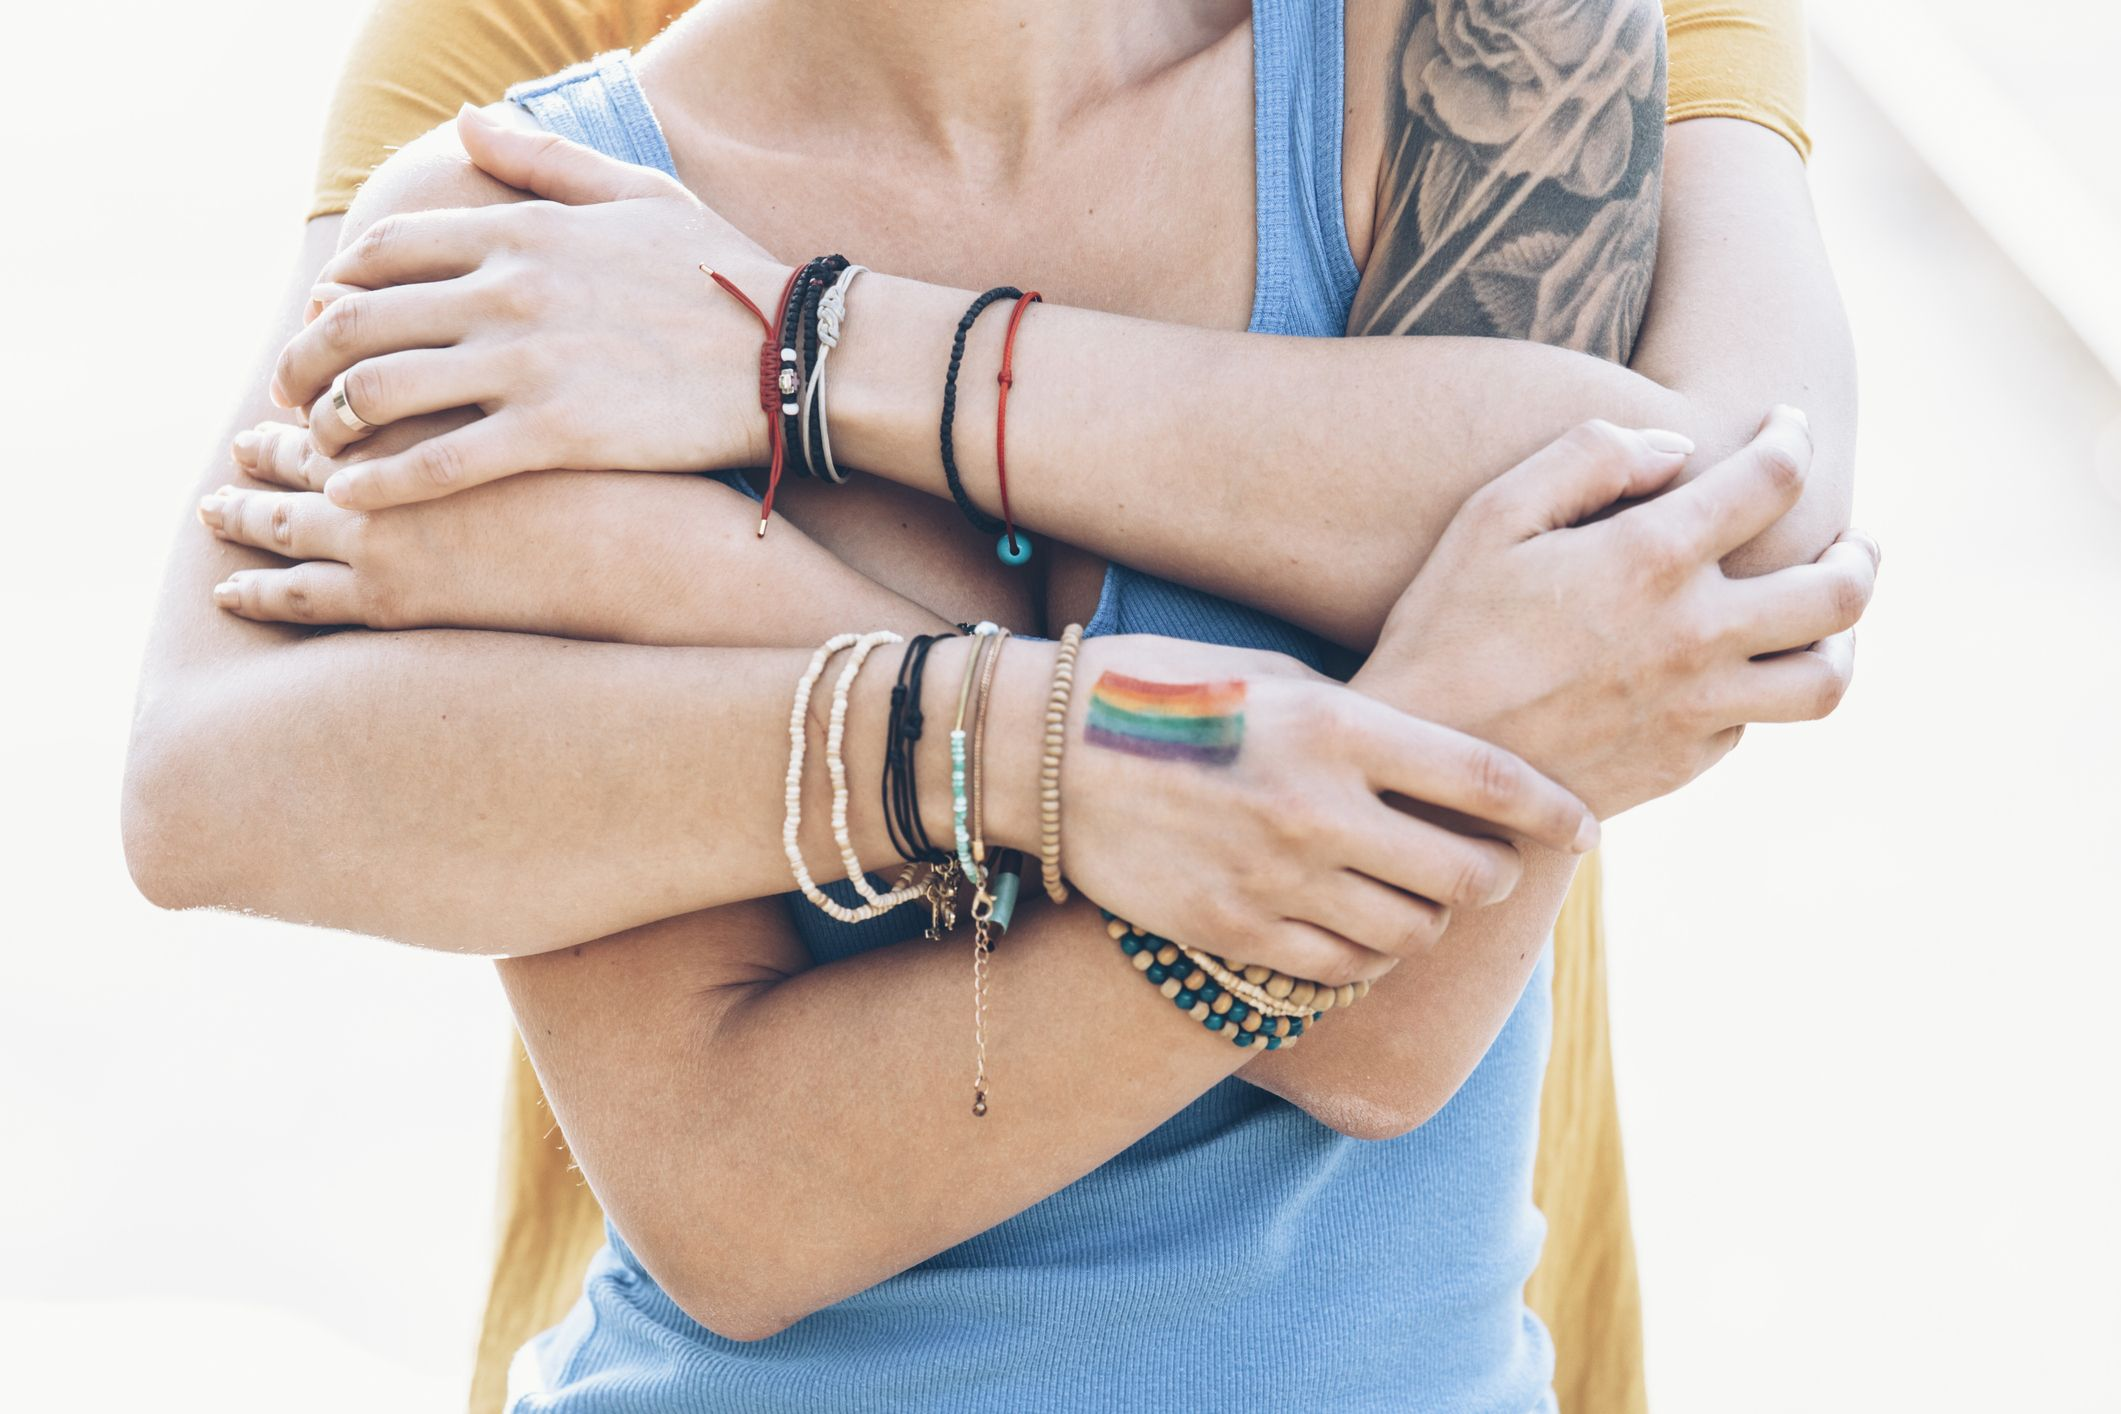 Here's Why Spirit Day Is So Important for LGBTQ Youth